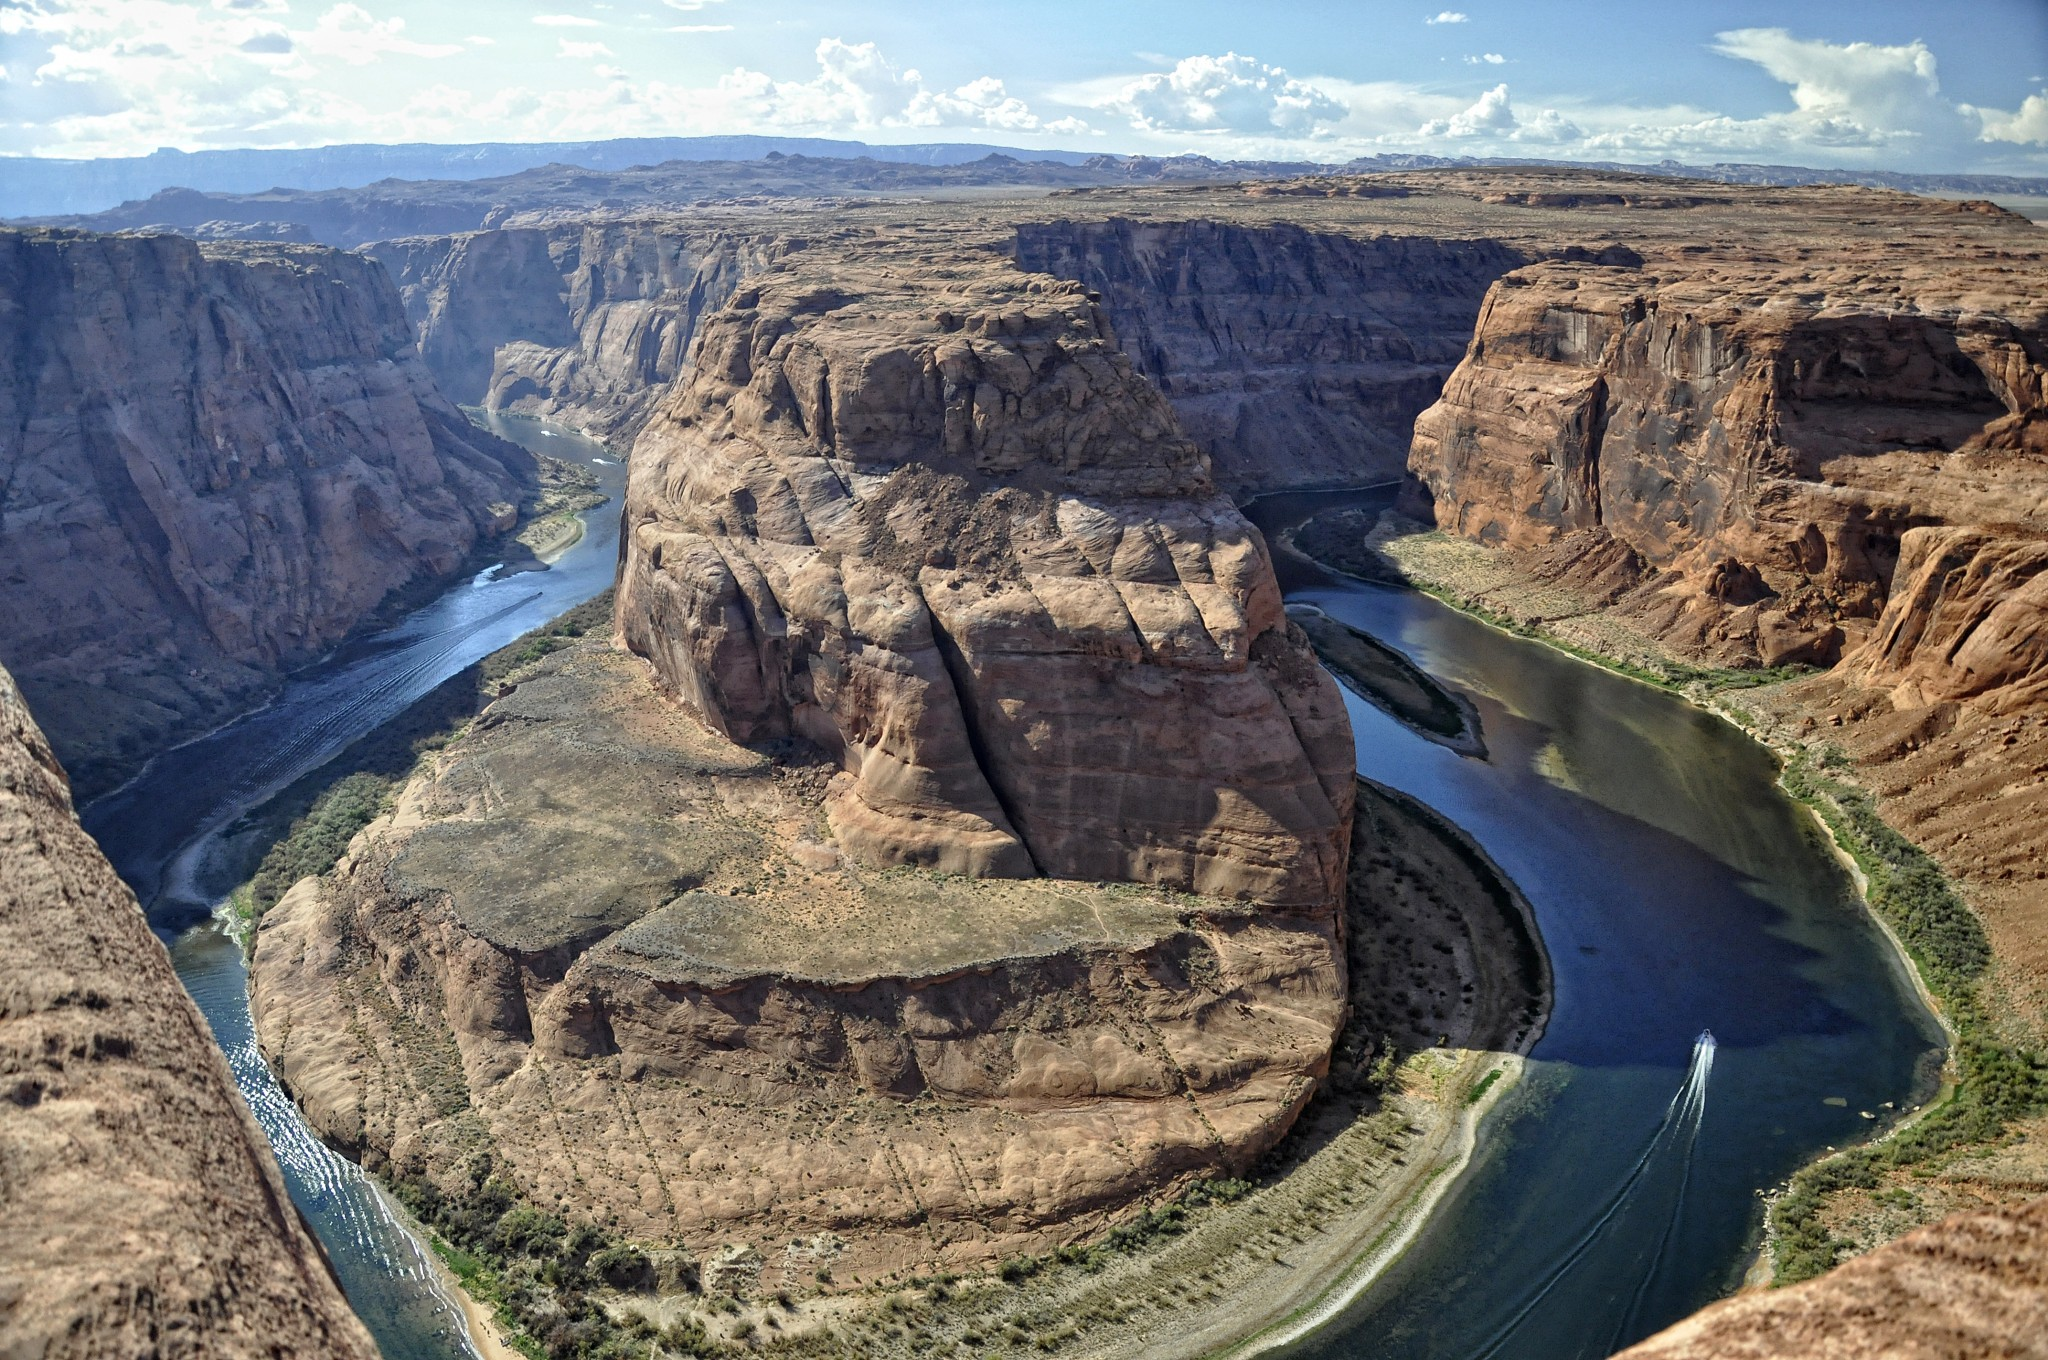 horseshoe_bend_tc_27-09-2012_15-34-14